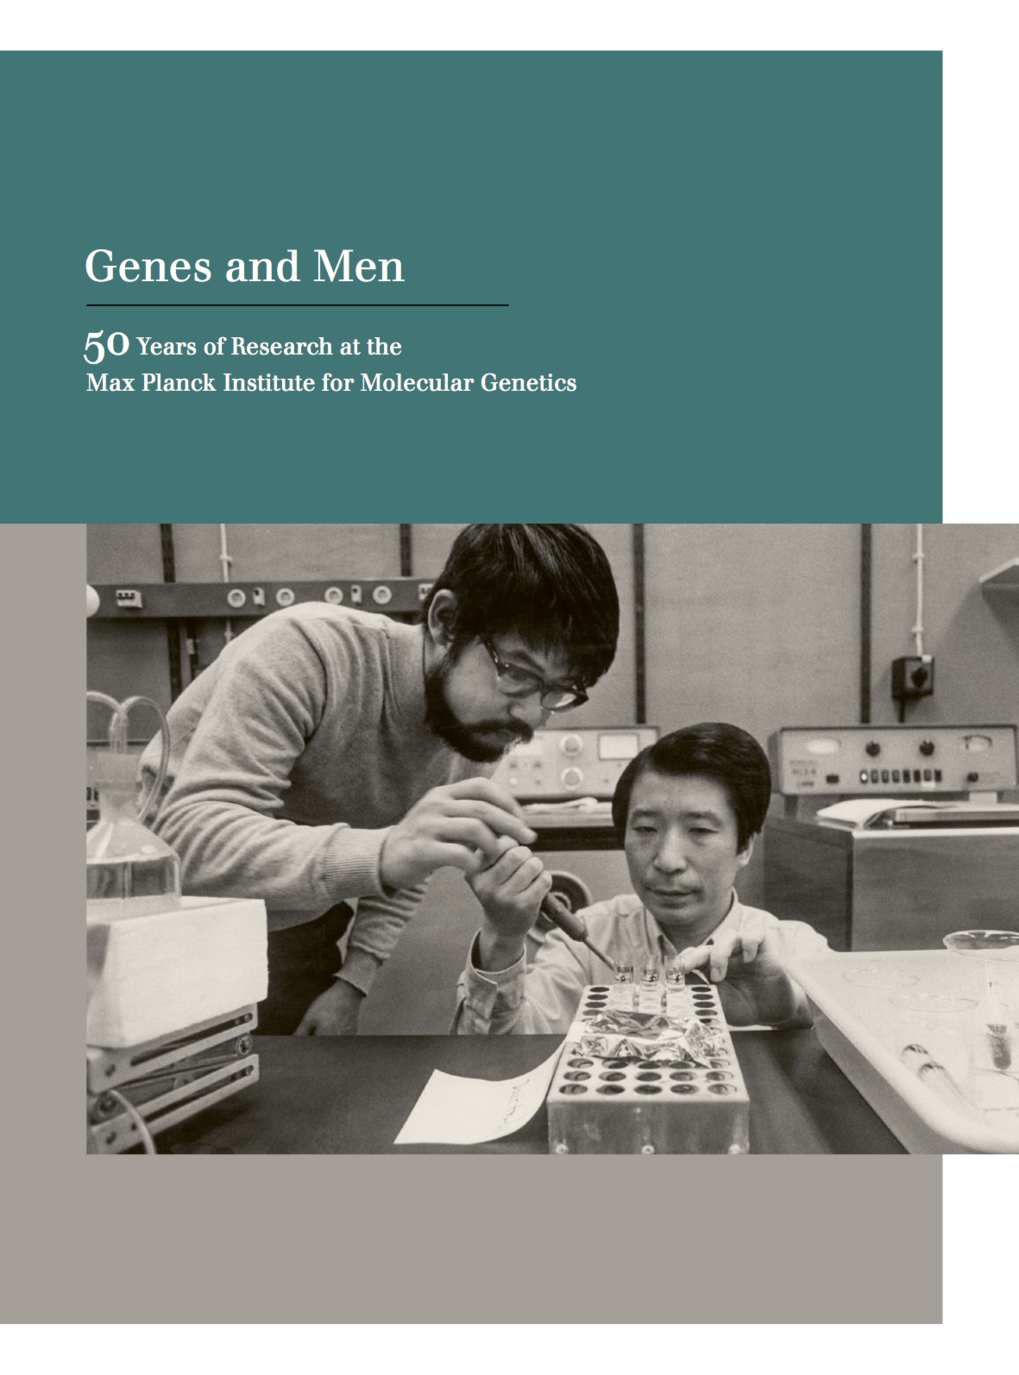 Festschrift on the occasion of the 50th anniversary of the Max Planck Institute for Molecular Genetics